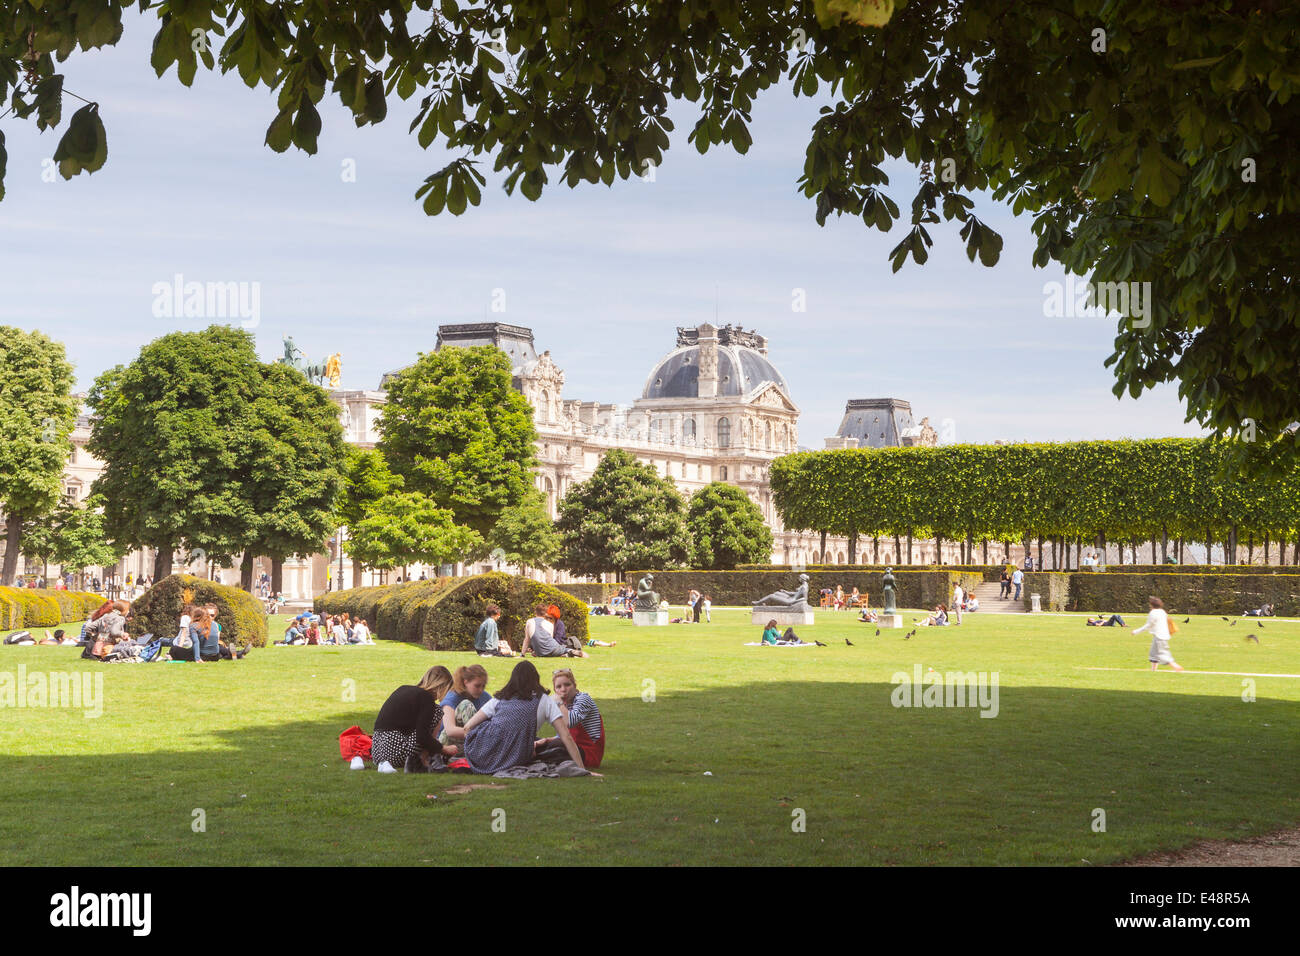 Jardin des Tuileries and the Louvre Museum, Paris. The museum is one of the largest in the World. - Stock Image